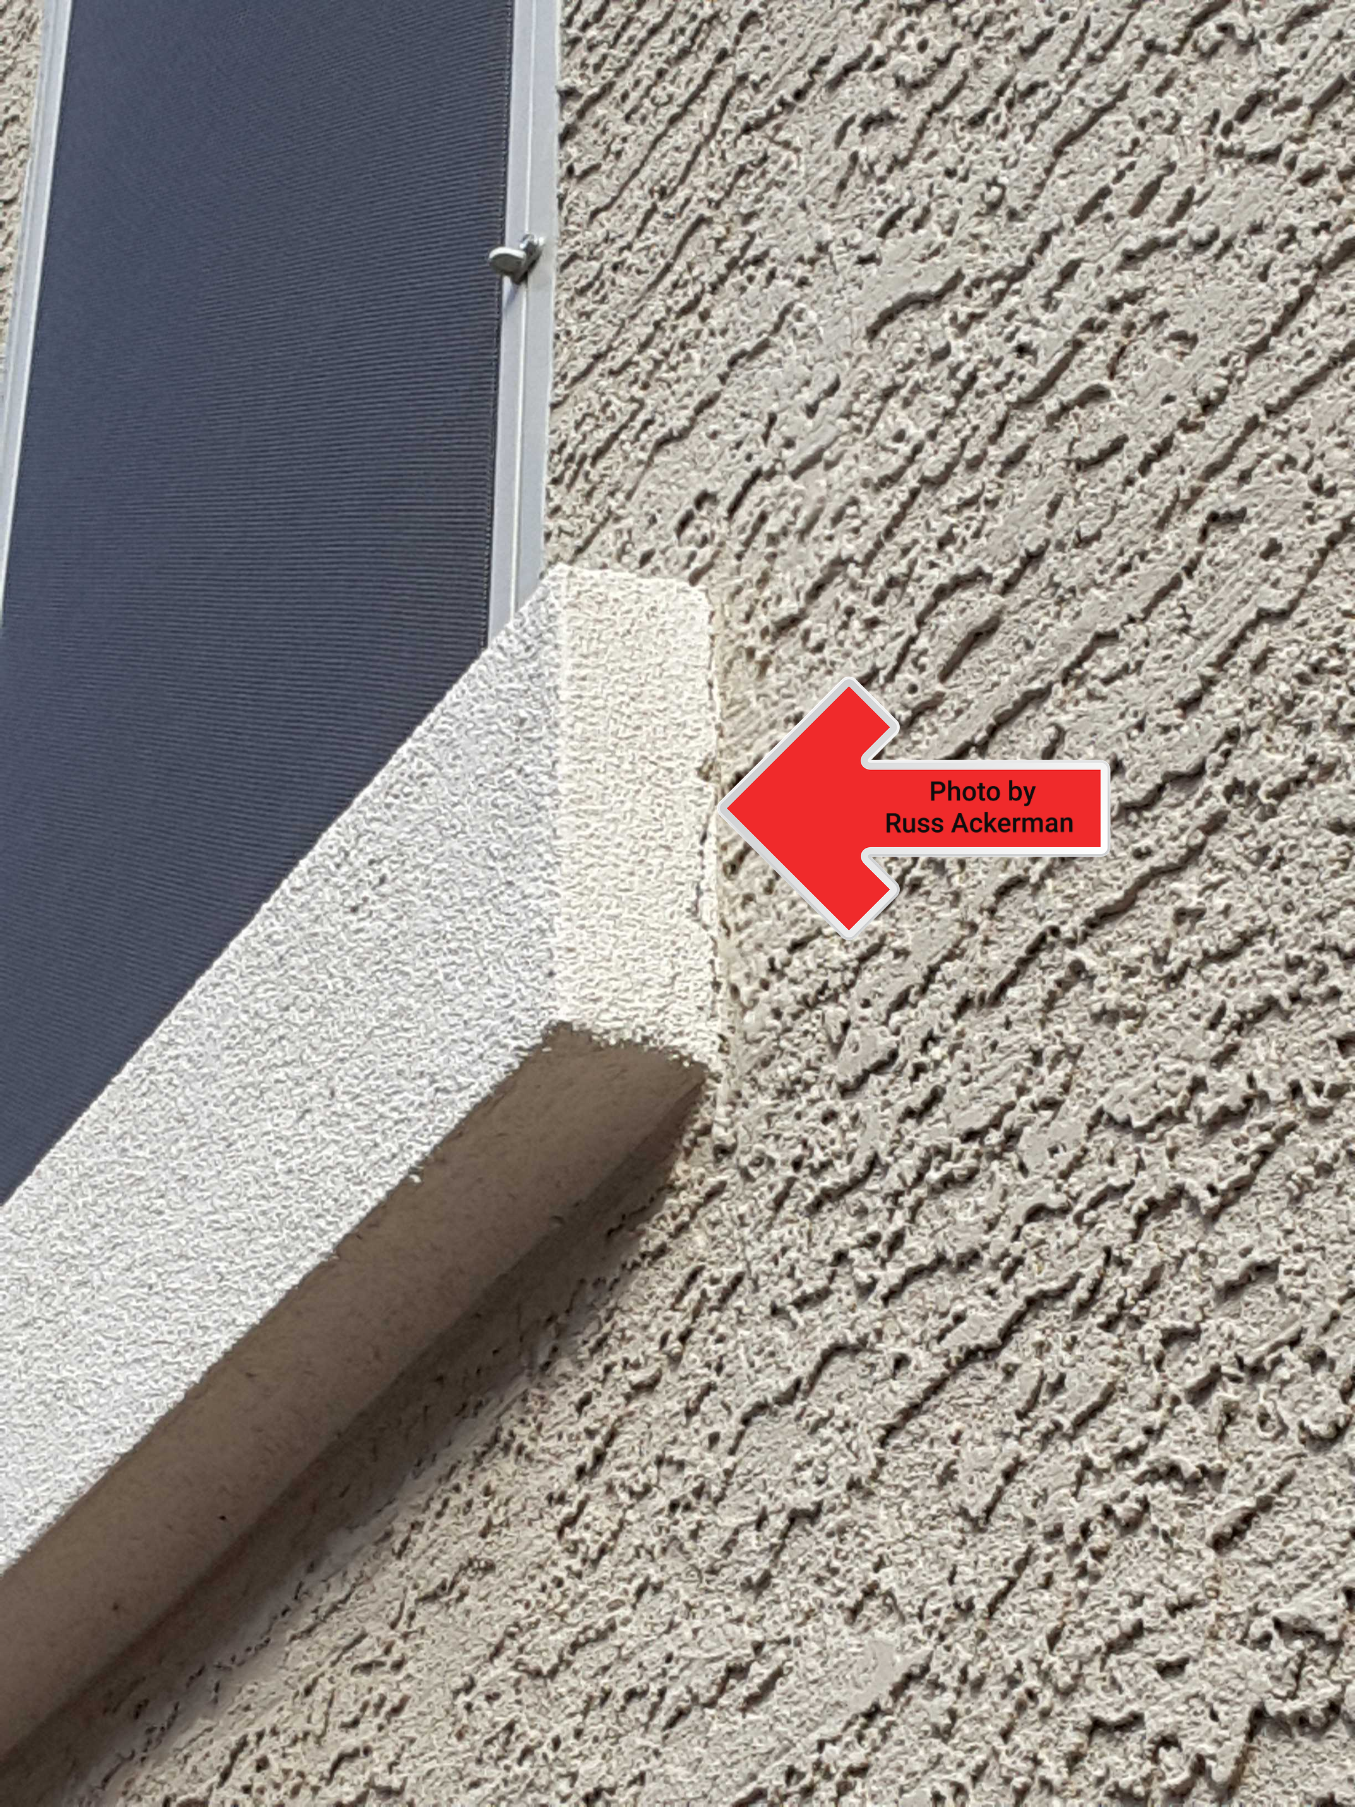 Cracks/gaps at stucco may allow potential water entry into the system and should be sealed, for most small cracks, paint is usually all that's needed.